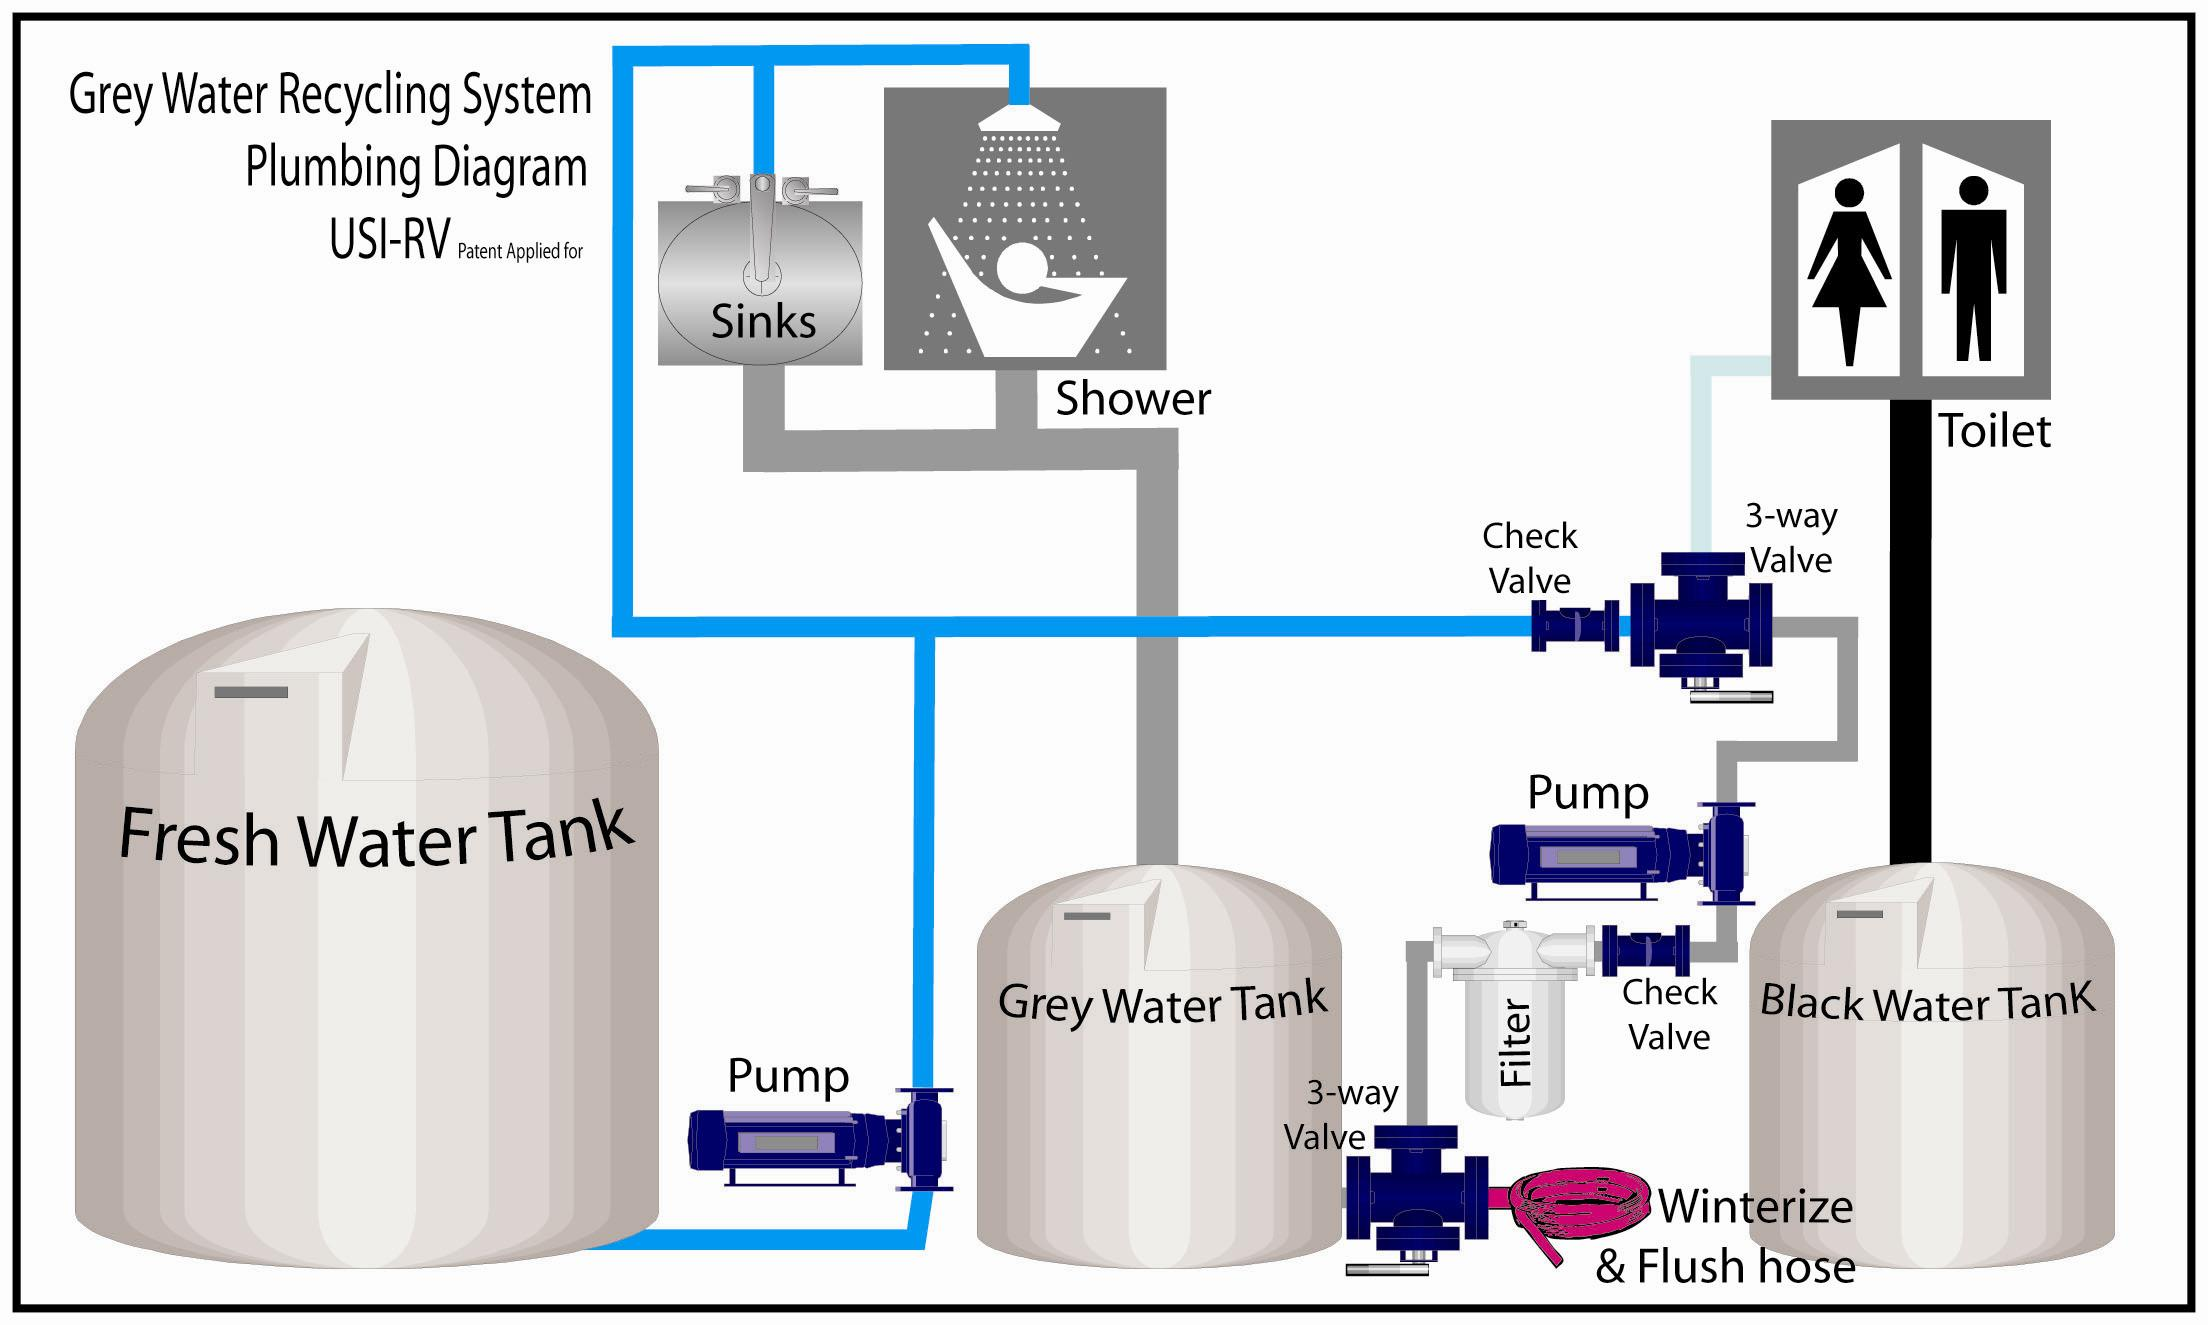 Tank Saver Plumbing Diagram 3 rv grey water recycling made easy rv life flojet rv waste pump diagram at soozxer.org